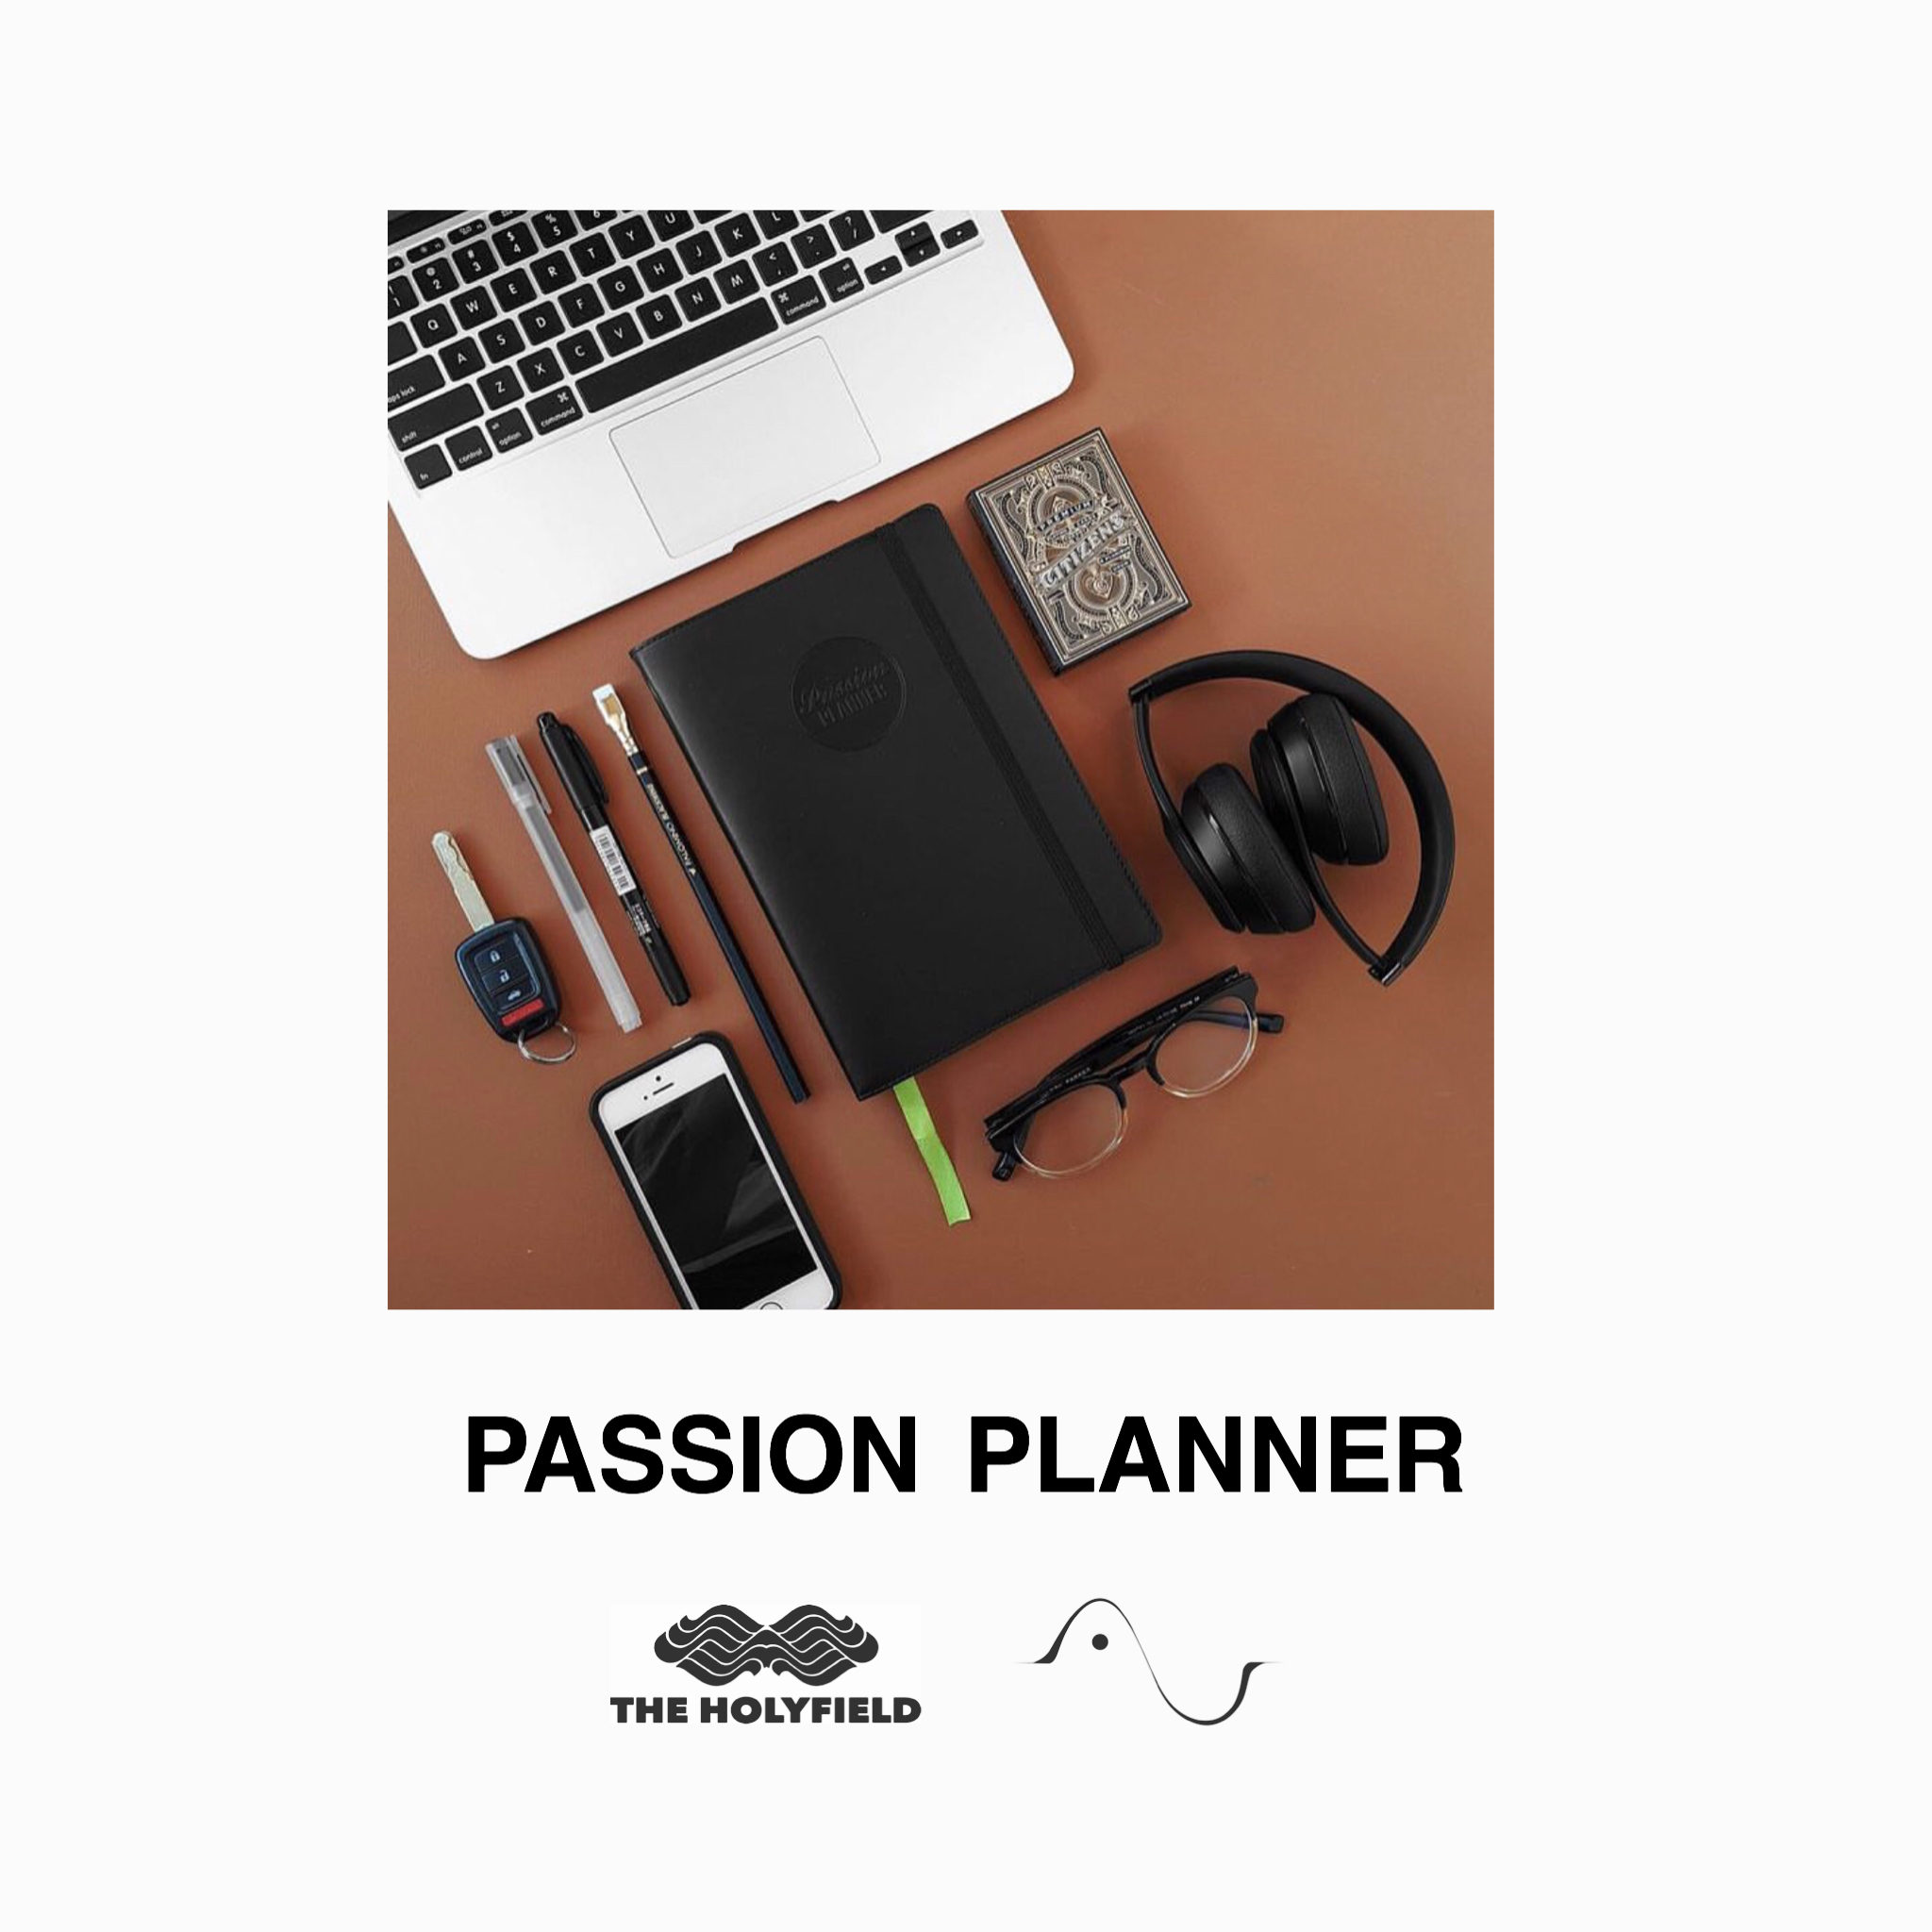 The Holyfield has partnered with Passion Planner to give all attendees a free Black Elite Passion Planner.